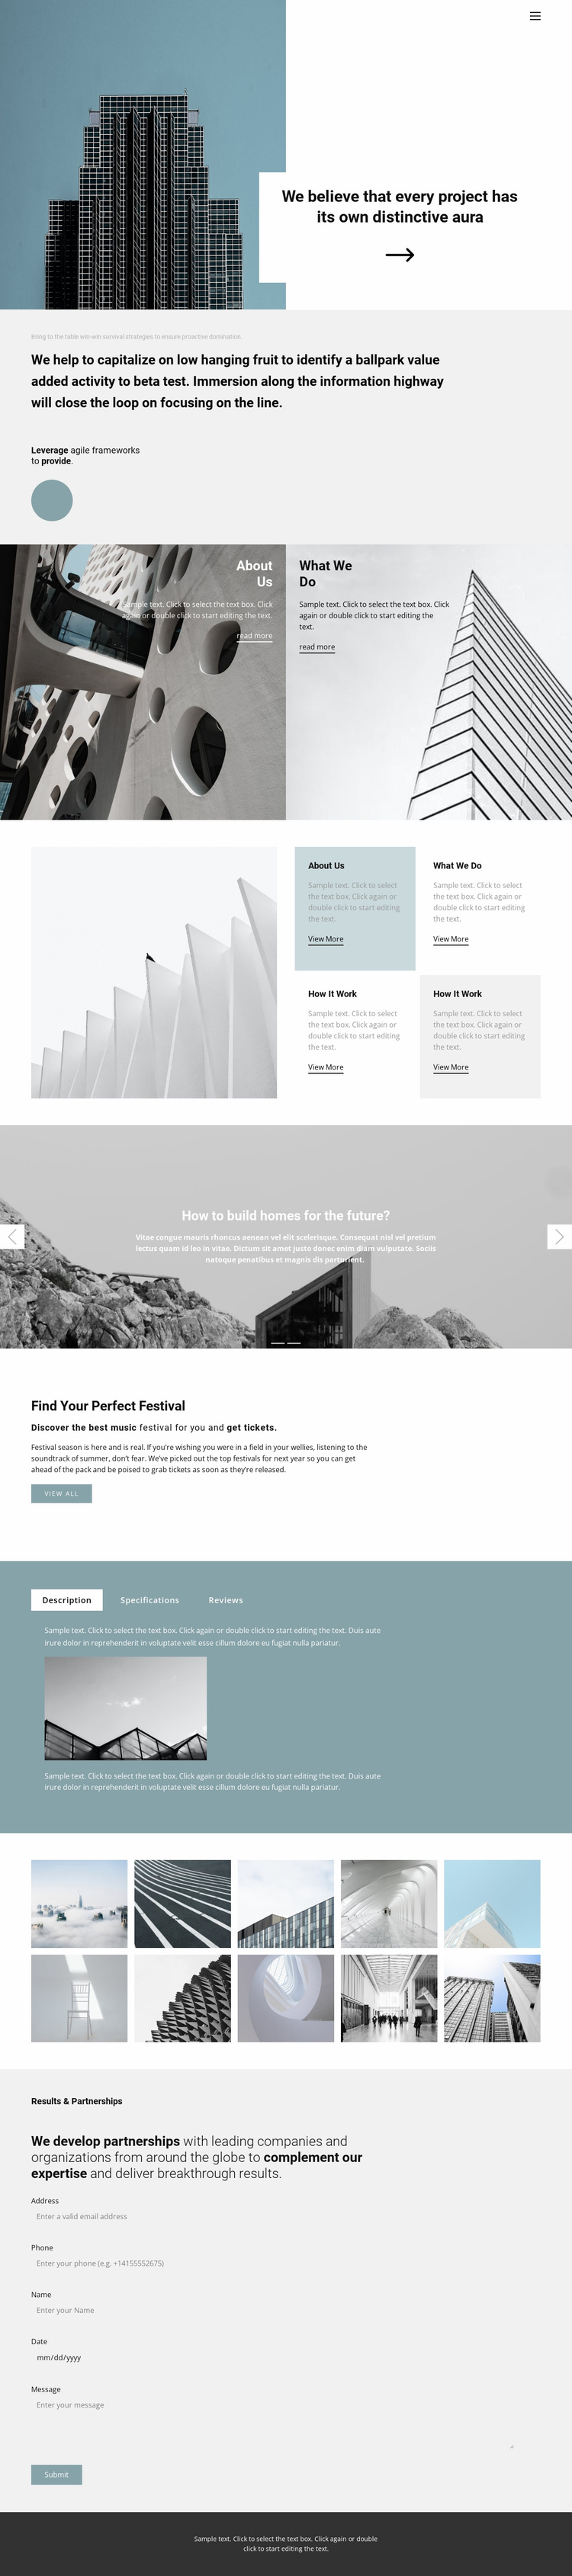 Choose an office for yourself Website Template